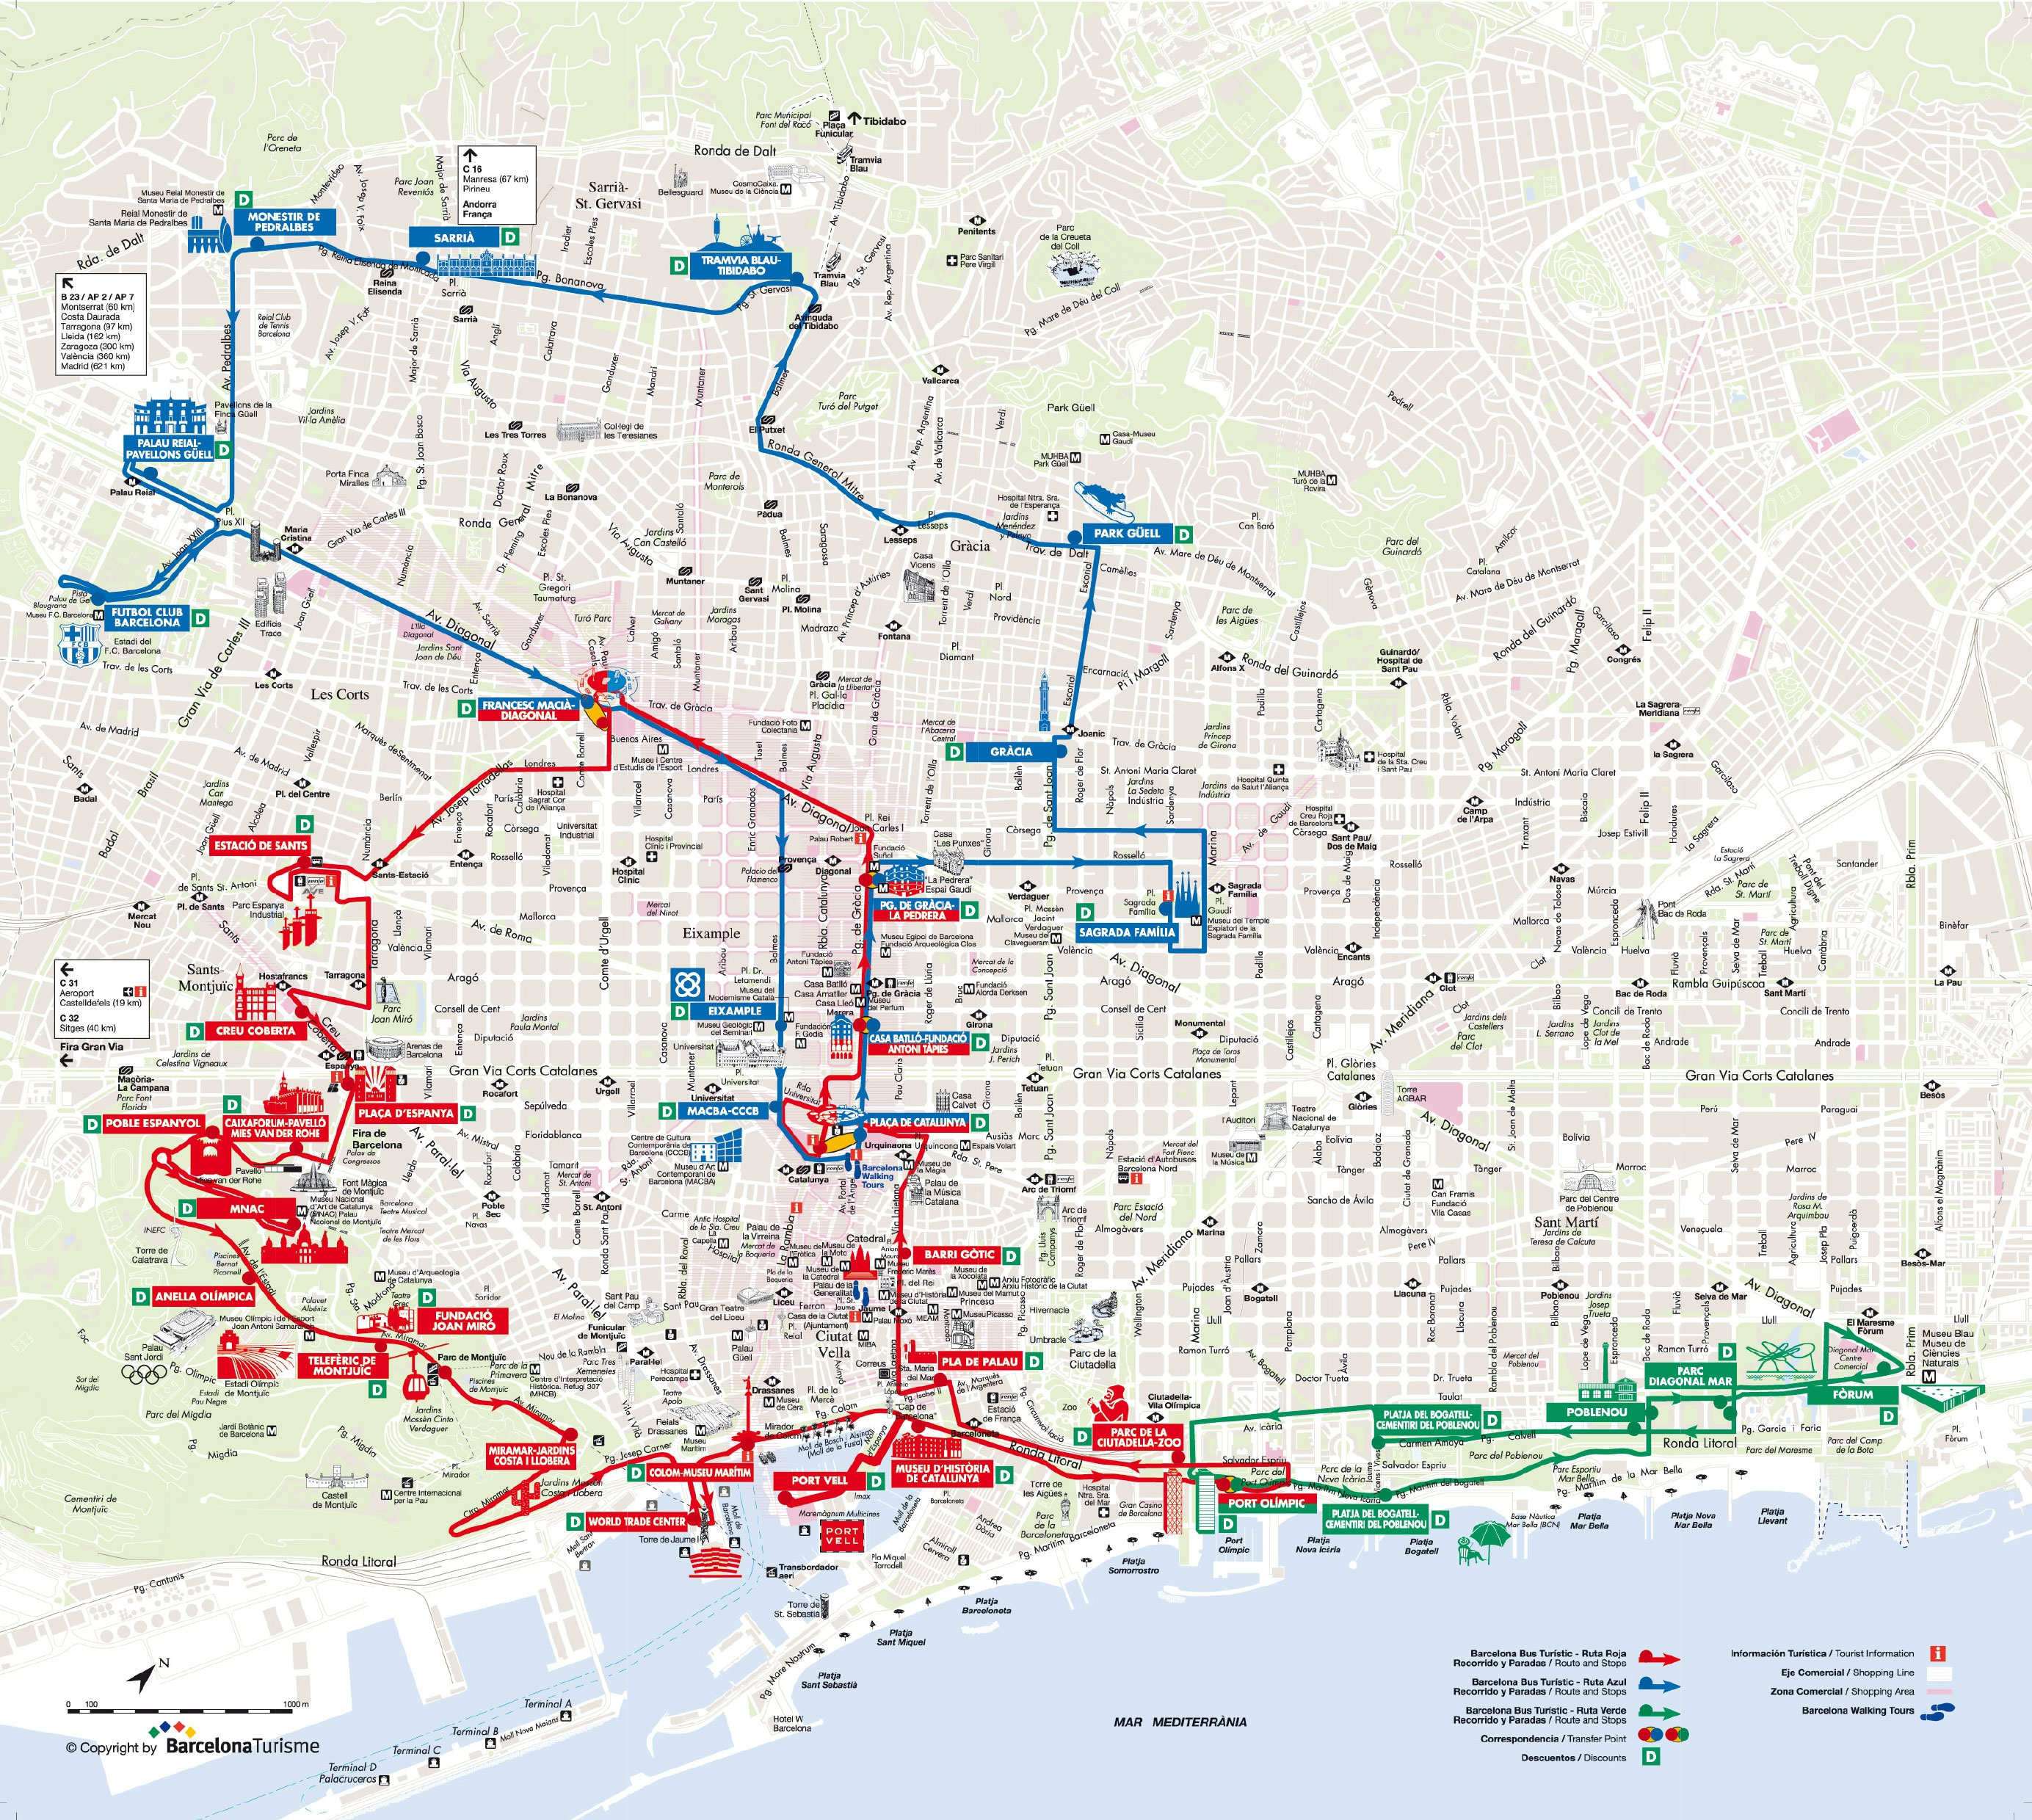 Karta Barcelona Metro.Map Of Barcelona Tourist Attractions Sightseeing Tourist Tour